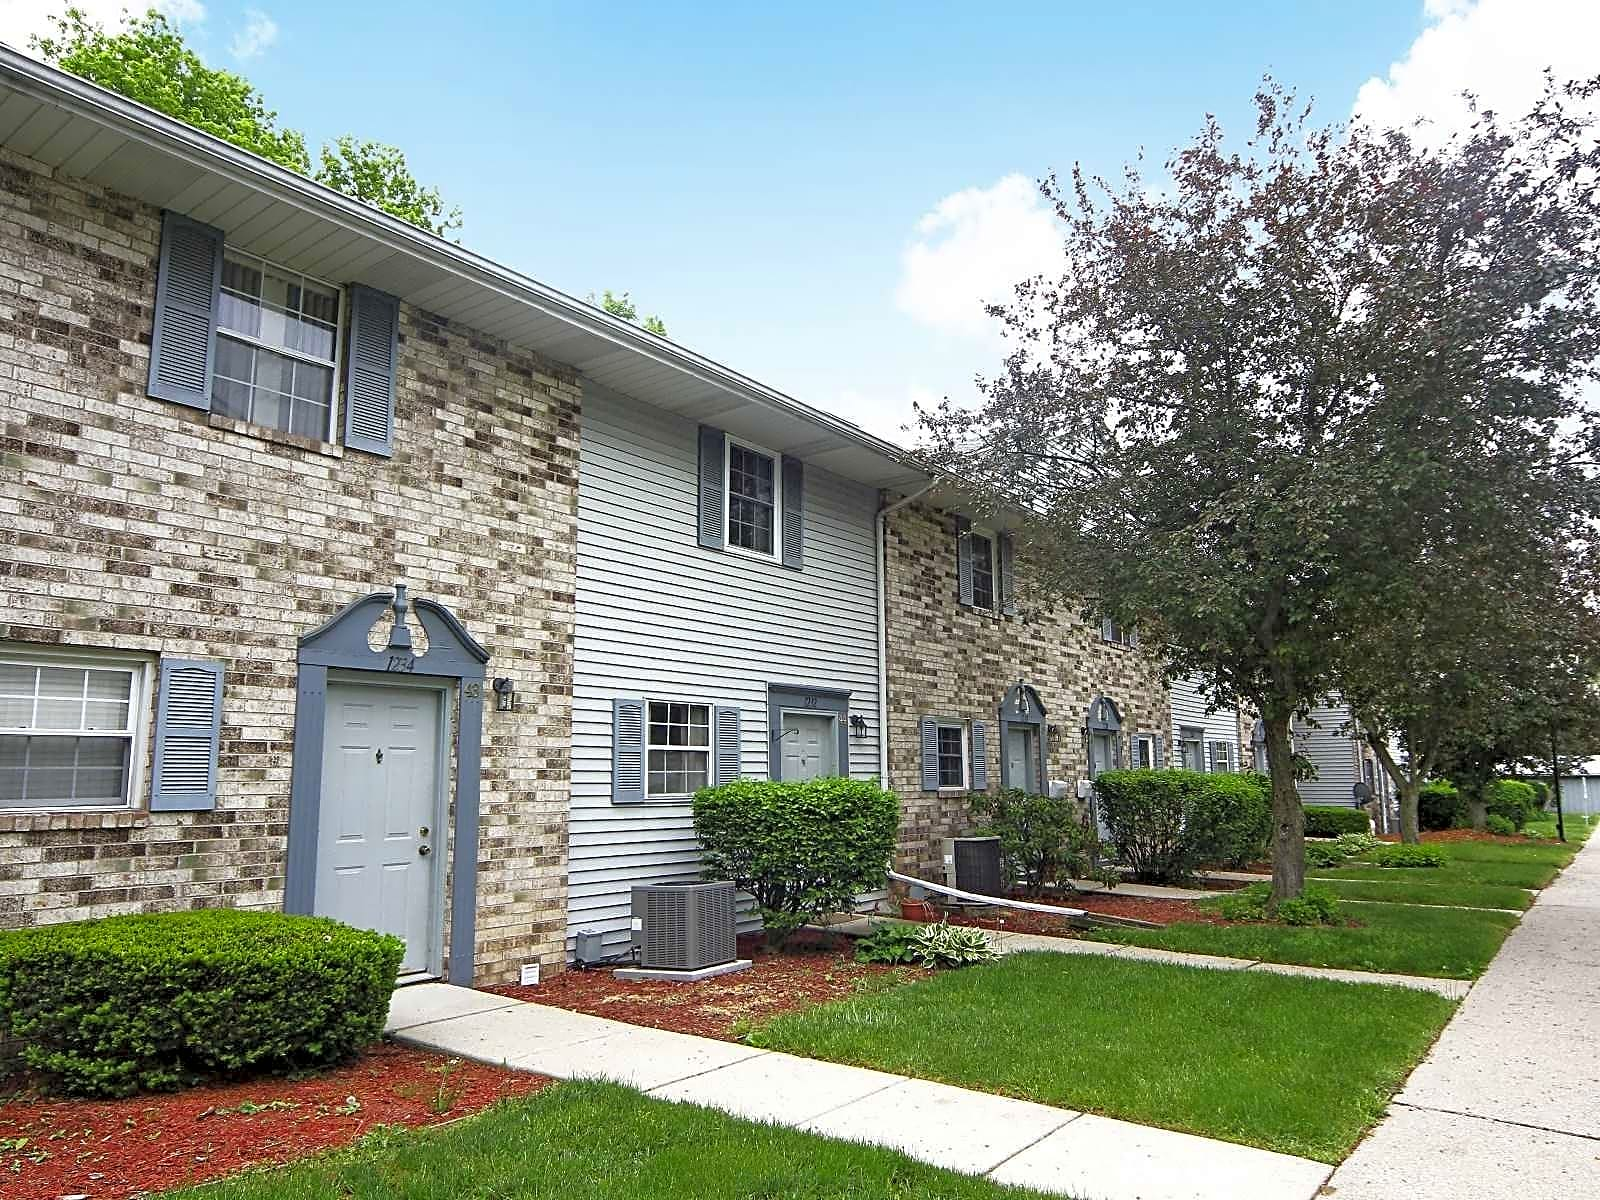 Apartments Near Albion Waldon Pond Condominiums for Albion College Students in Albion, MI